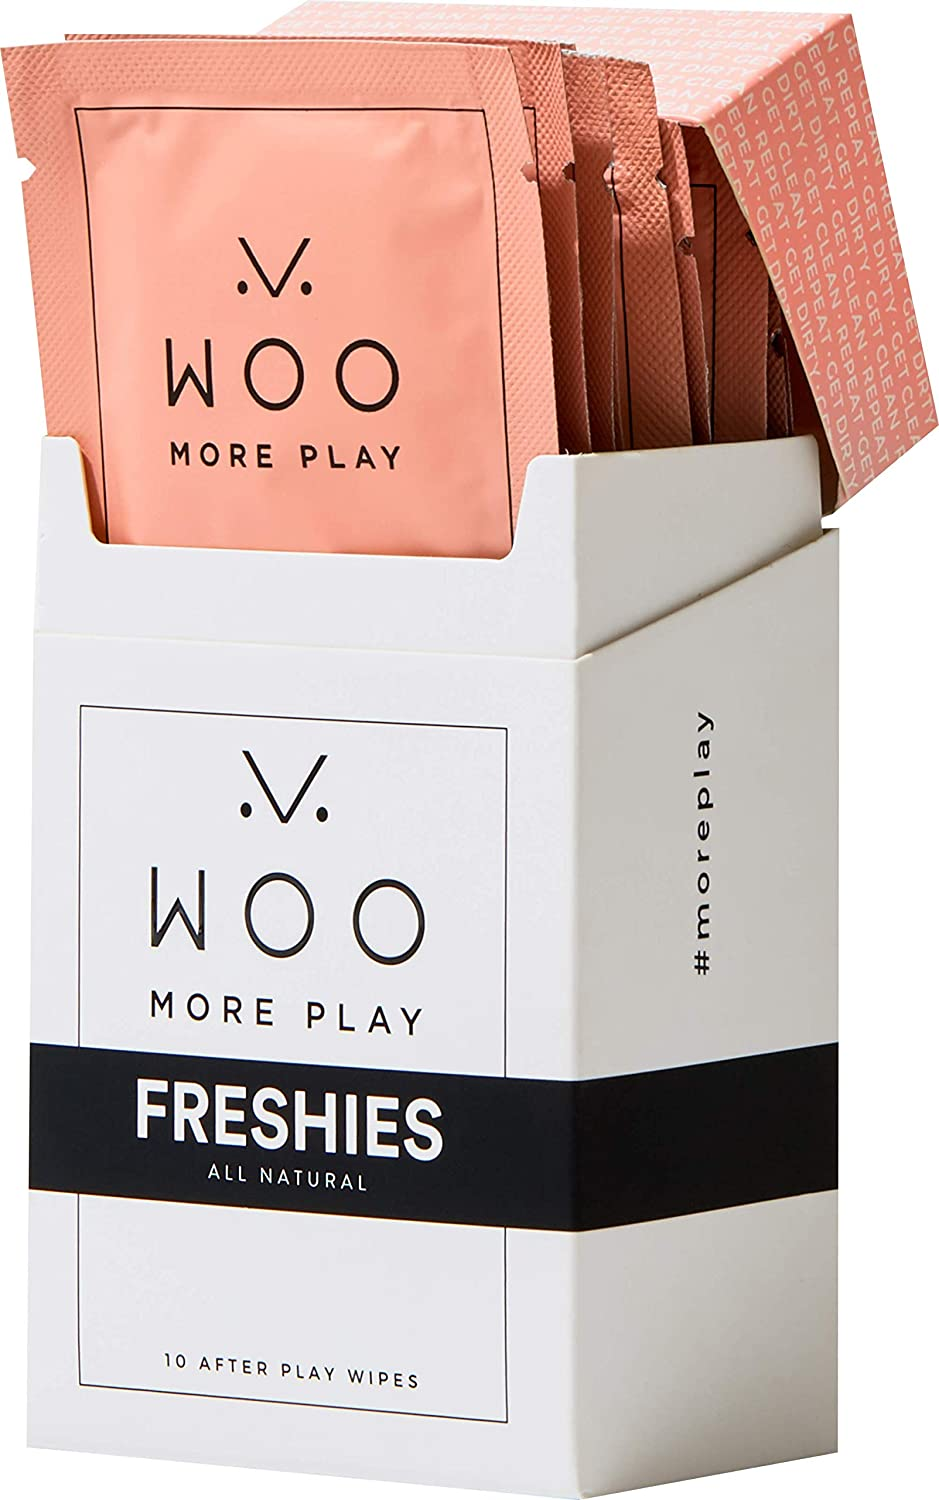 Woo 2021 autumn and winter new More Play: Freshies - 10ct 55% OFF Refres Towelettes All-Natural